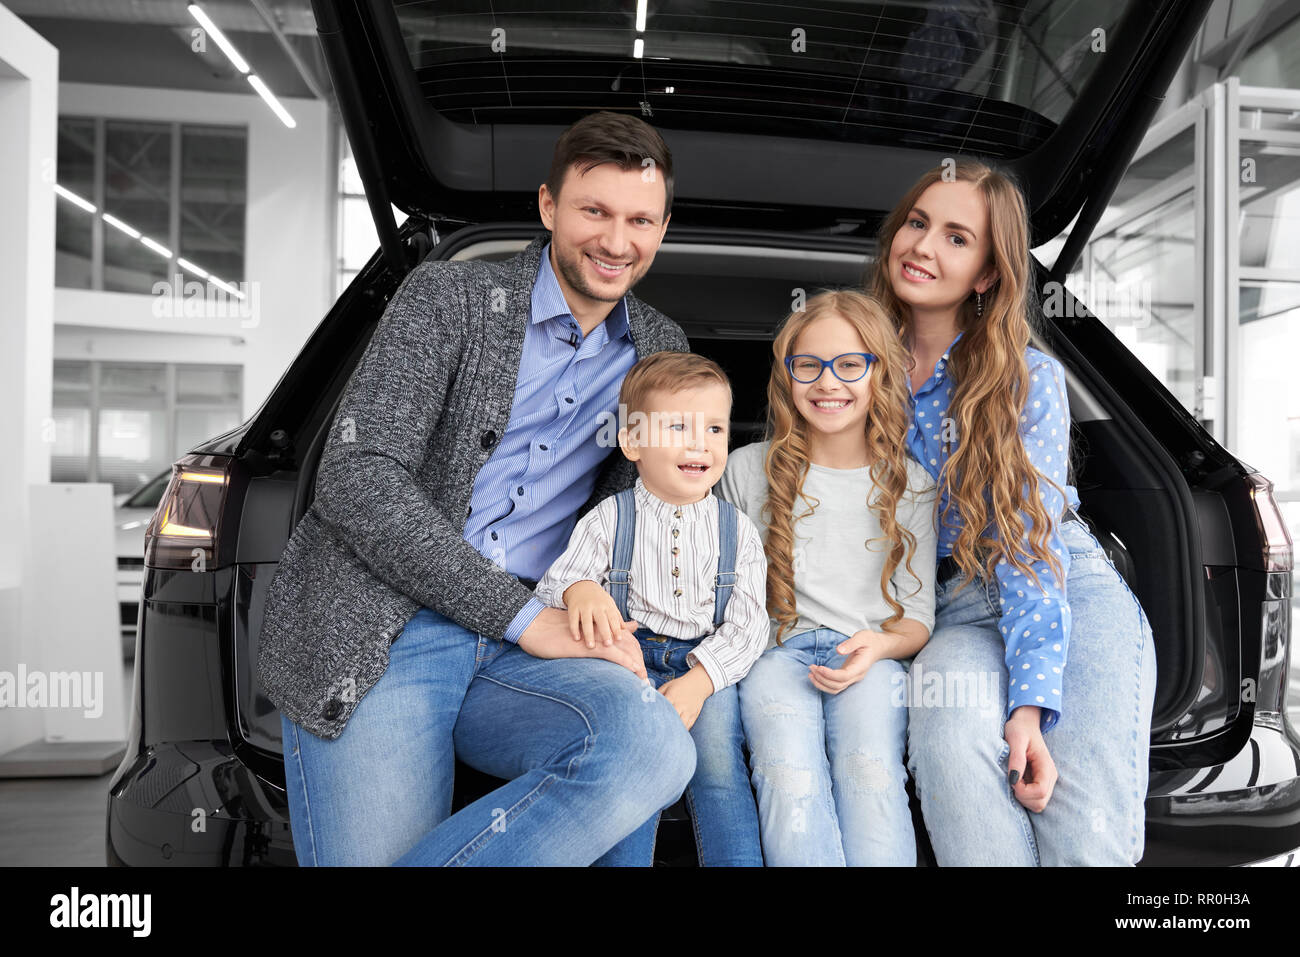 Cheerful and happy family posing together in car center showroom. Parents and children sitting in car trunk, luggage space of black automobile looking at camera and smiling. - Stock Image